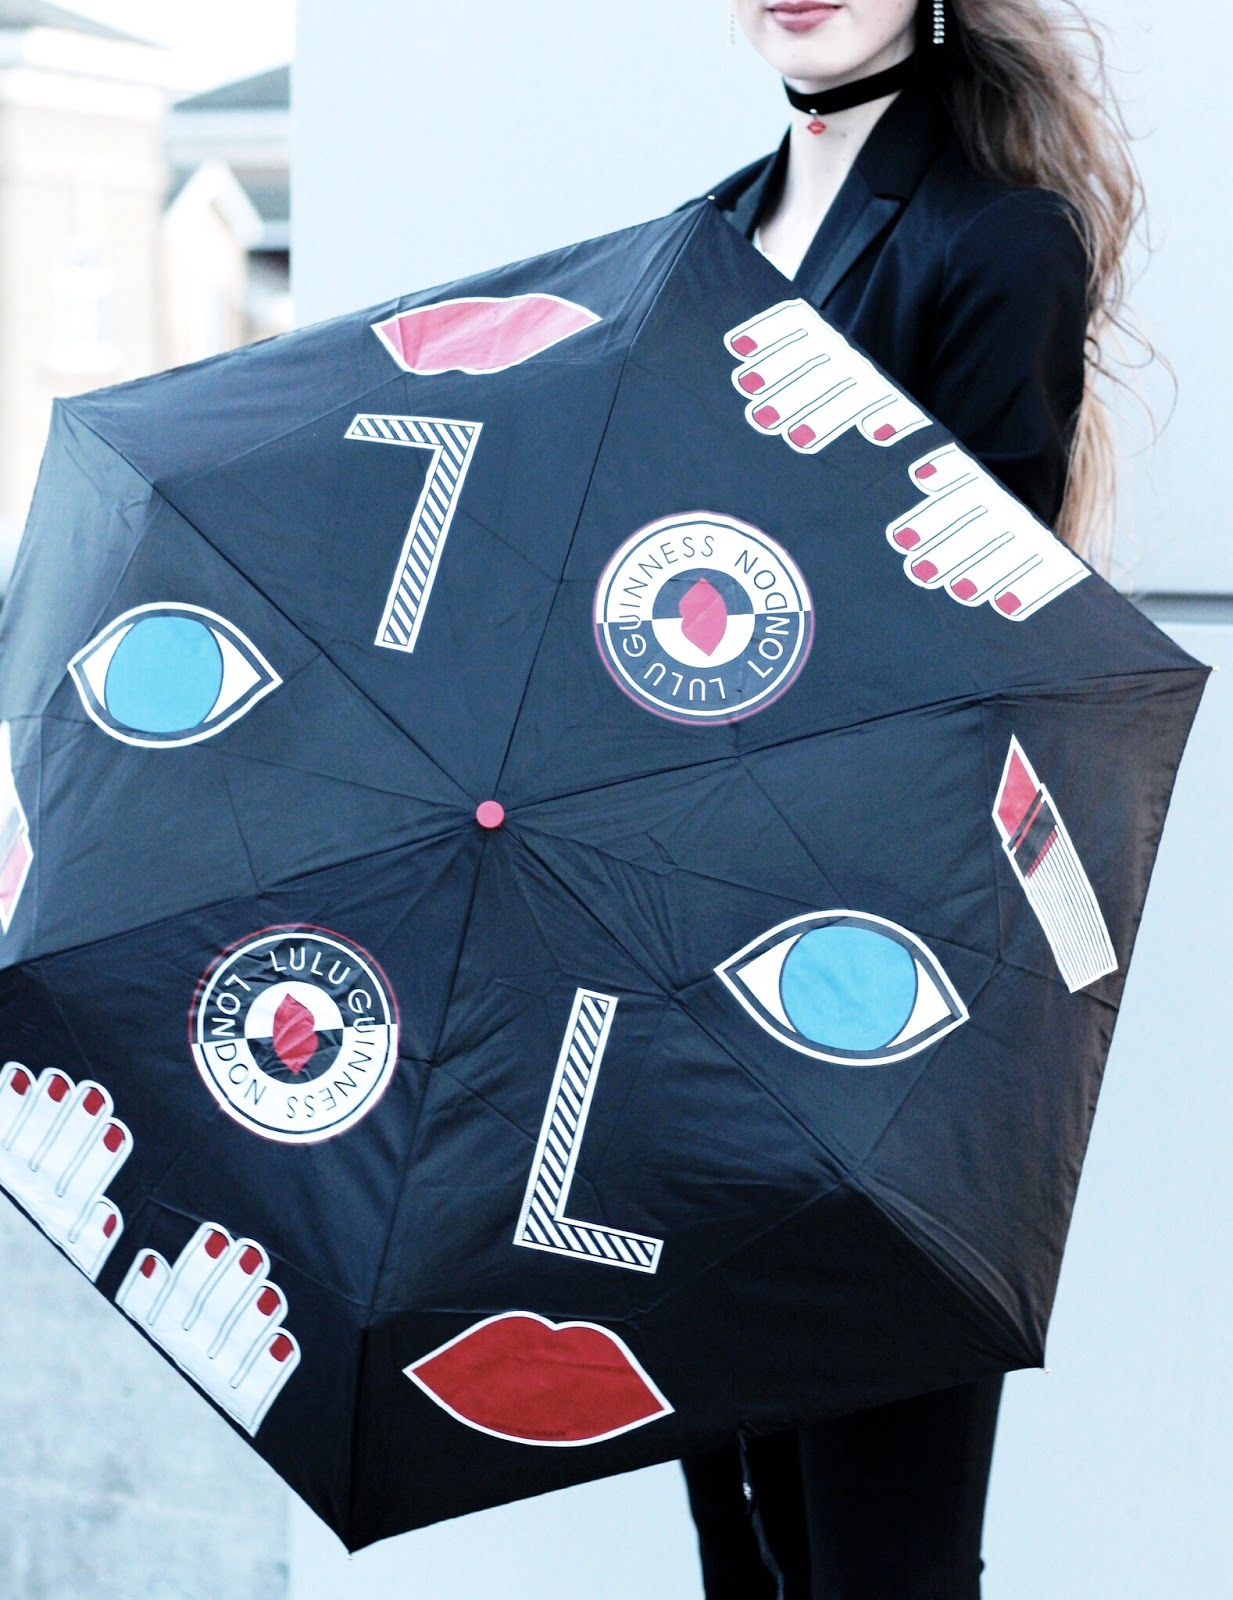 Fulton Lulu Guinness Stickers Umbrella